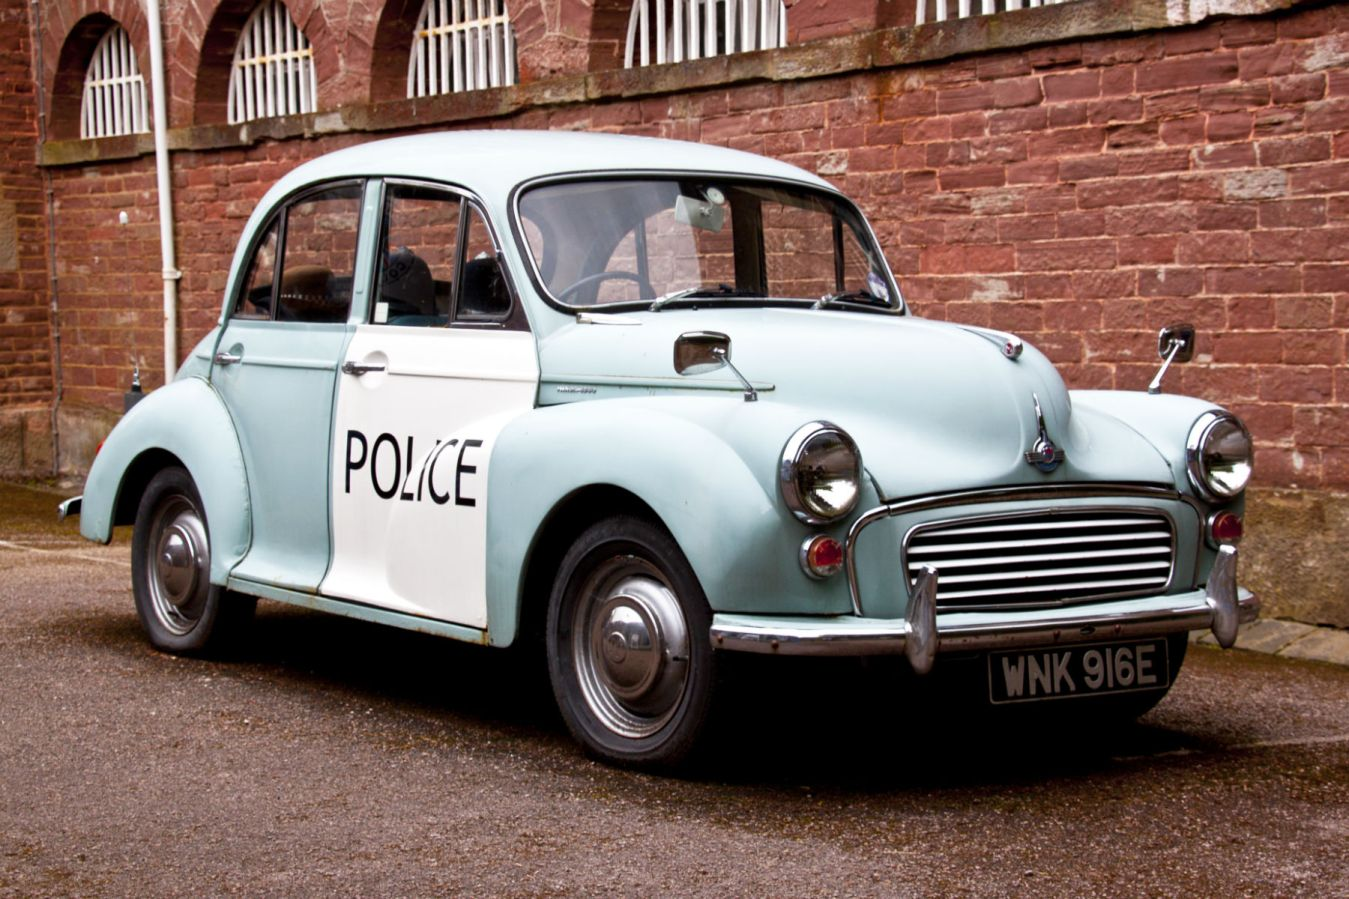 It's official: police in Scotland love a retro cop car